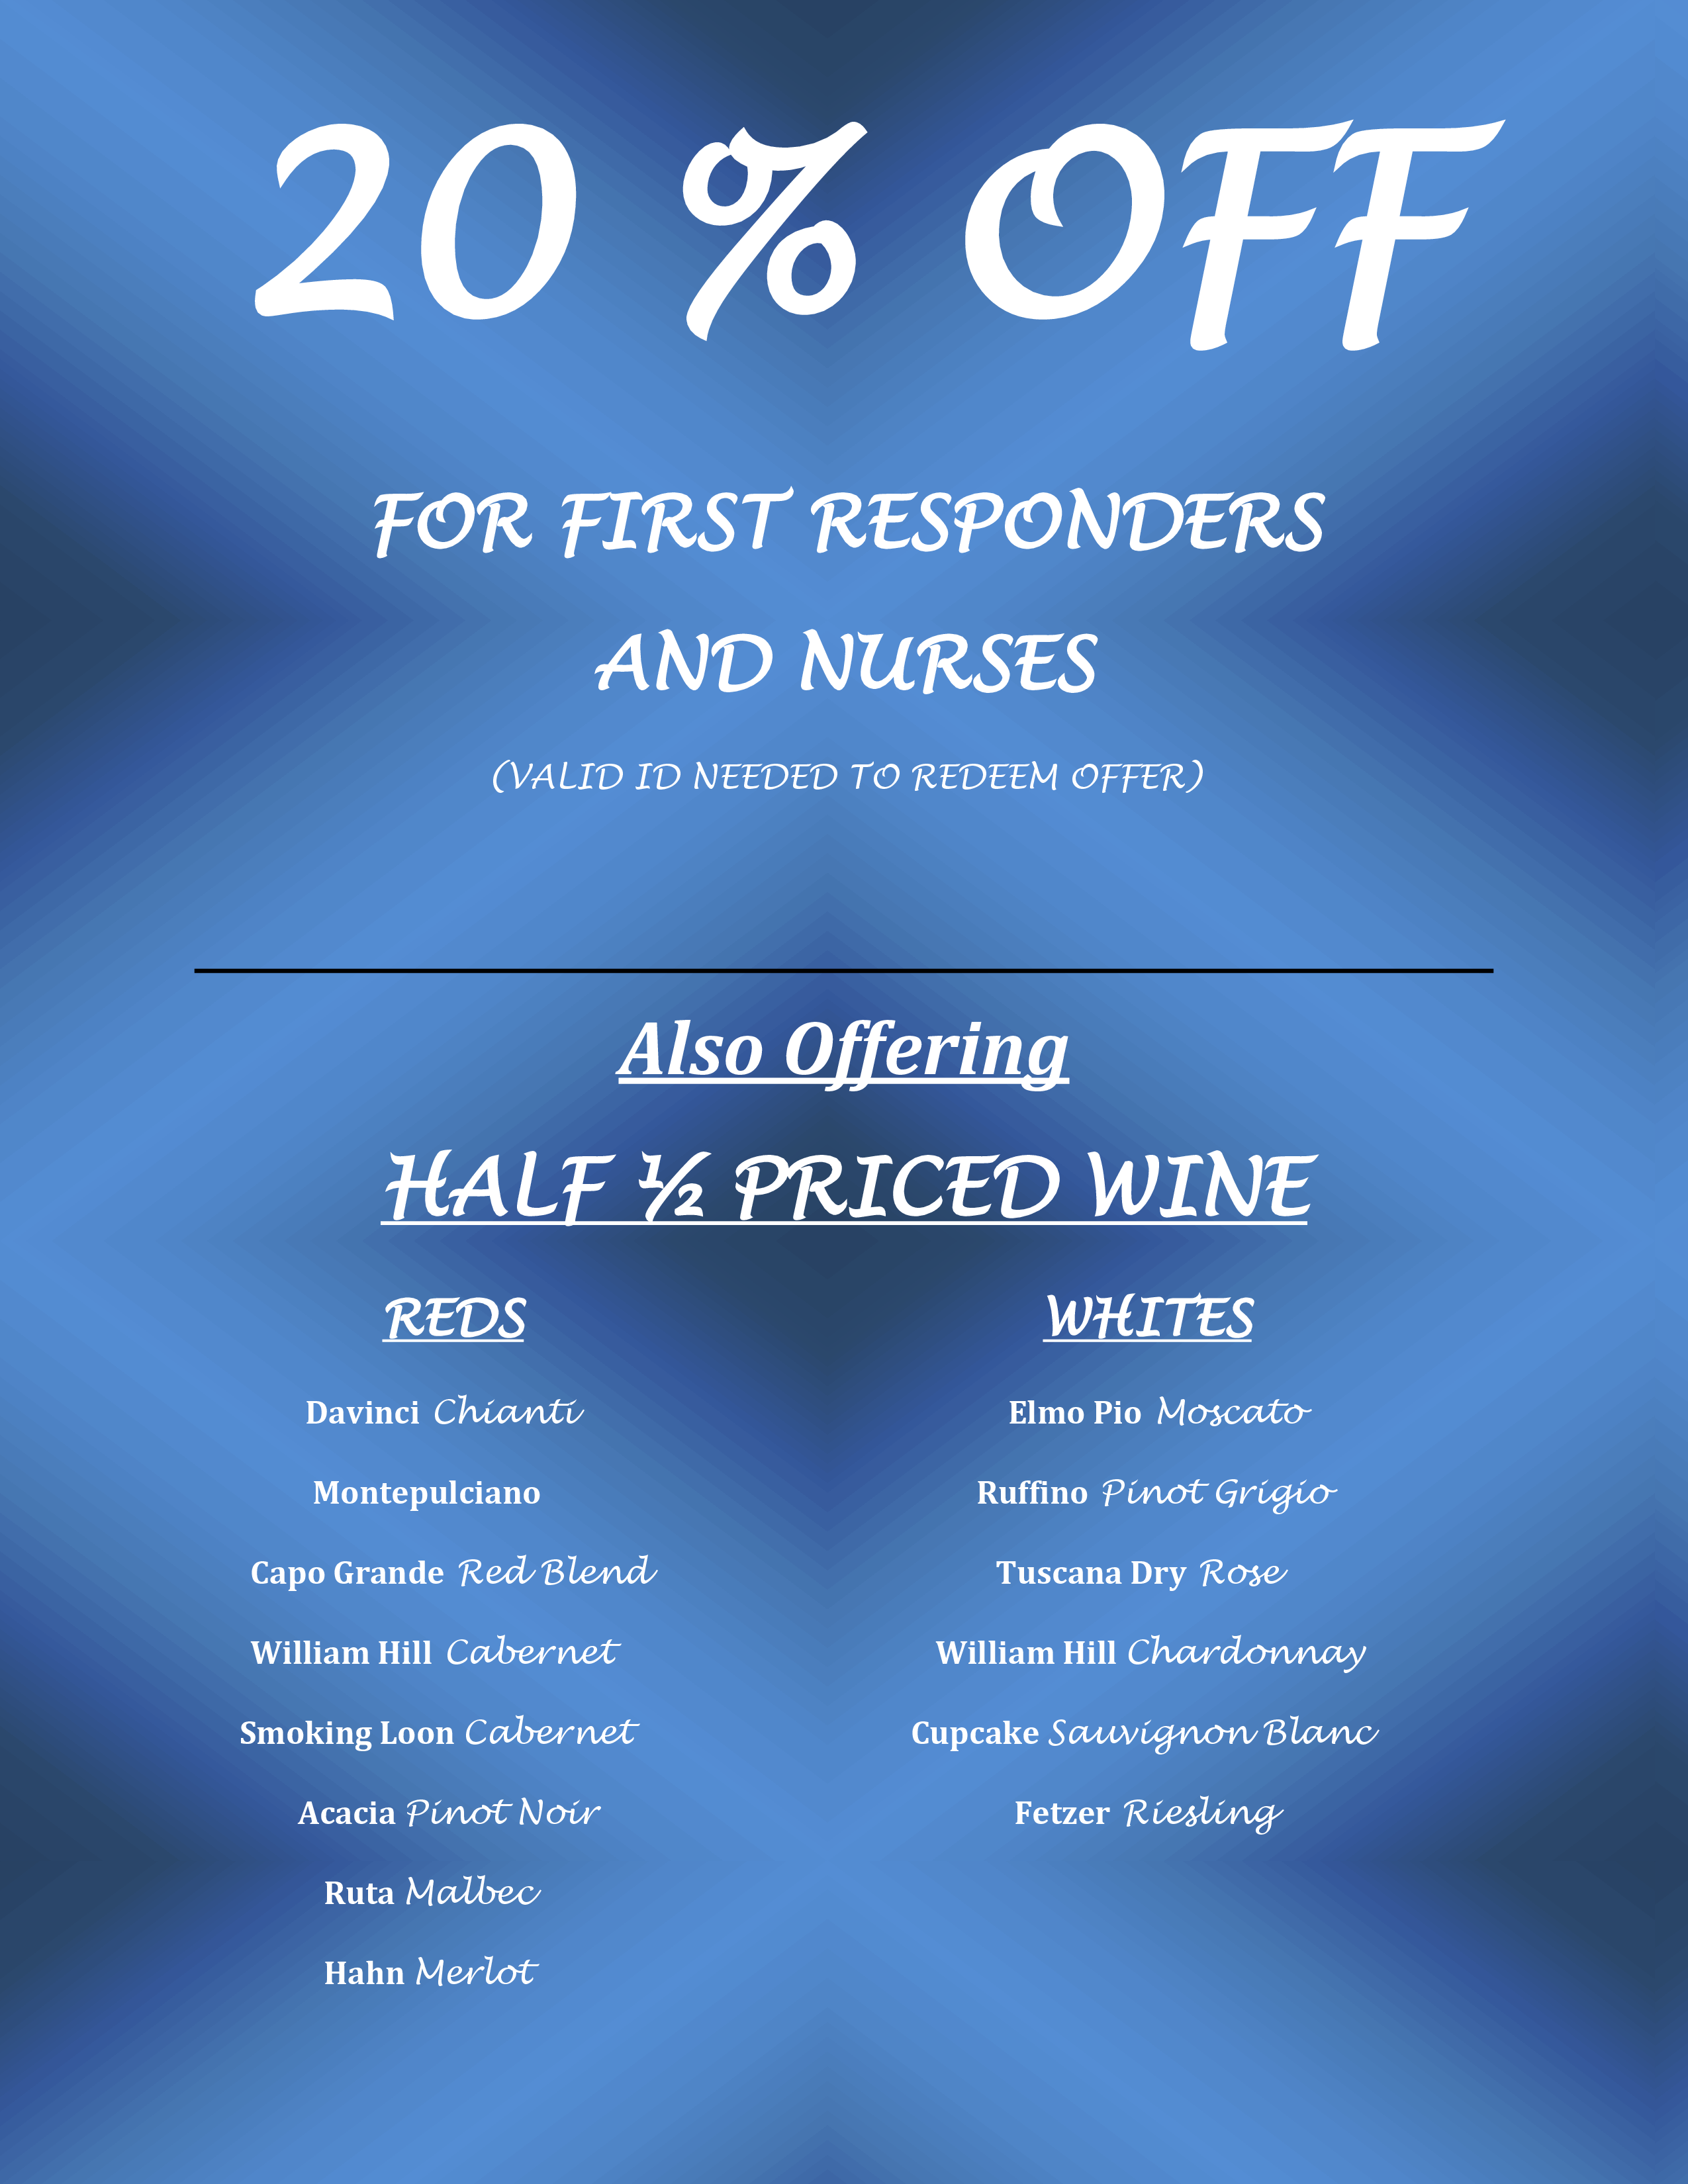 20 % OFF FOR FIRST RESPONDERS AND NURSES (VALID ID NEEDED TO REDEEM OFFER) 	  Also Offering HALF ½ PRICED WINE            REDS                               WHITES  Davinci Chianti                                       Elmo Pio Moscato   Montepulciano                                        Ruffino Pinot Grigio      Capo Grande Red Blend                               Tuscana Dry Rose              William Hill Cabernet                                William Hill Chardonnay     Smoking Loon Cabernet                         Cupcake Sauvignon Blanc Acacia Pinot Noir                                      Fetzer Riesling    Ruta Malbec    Hahn Merlot